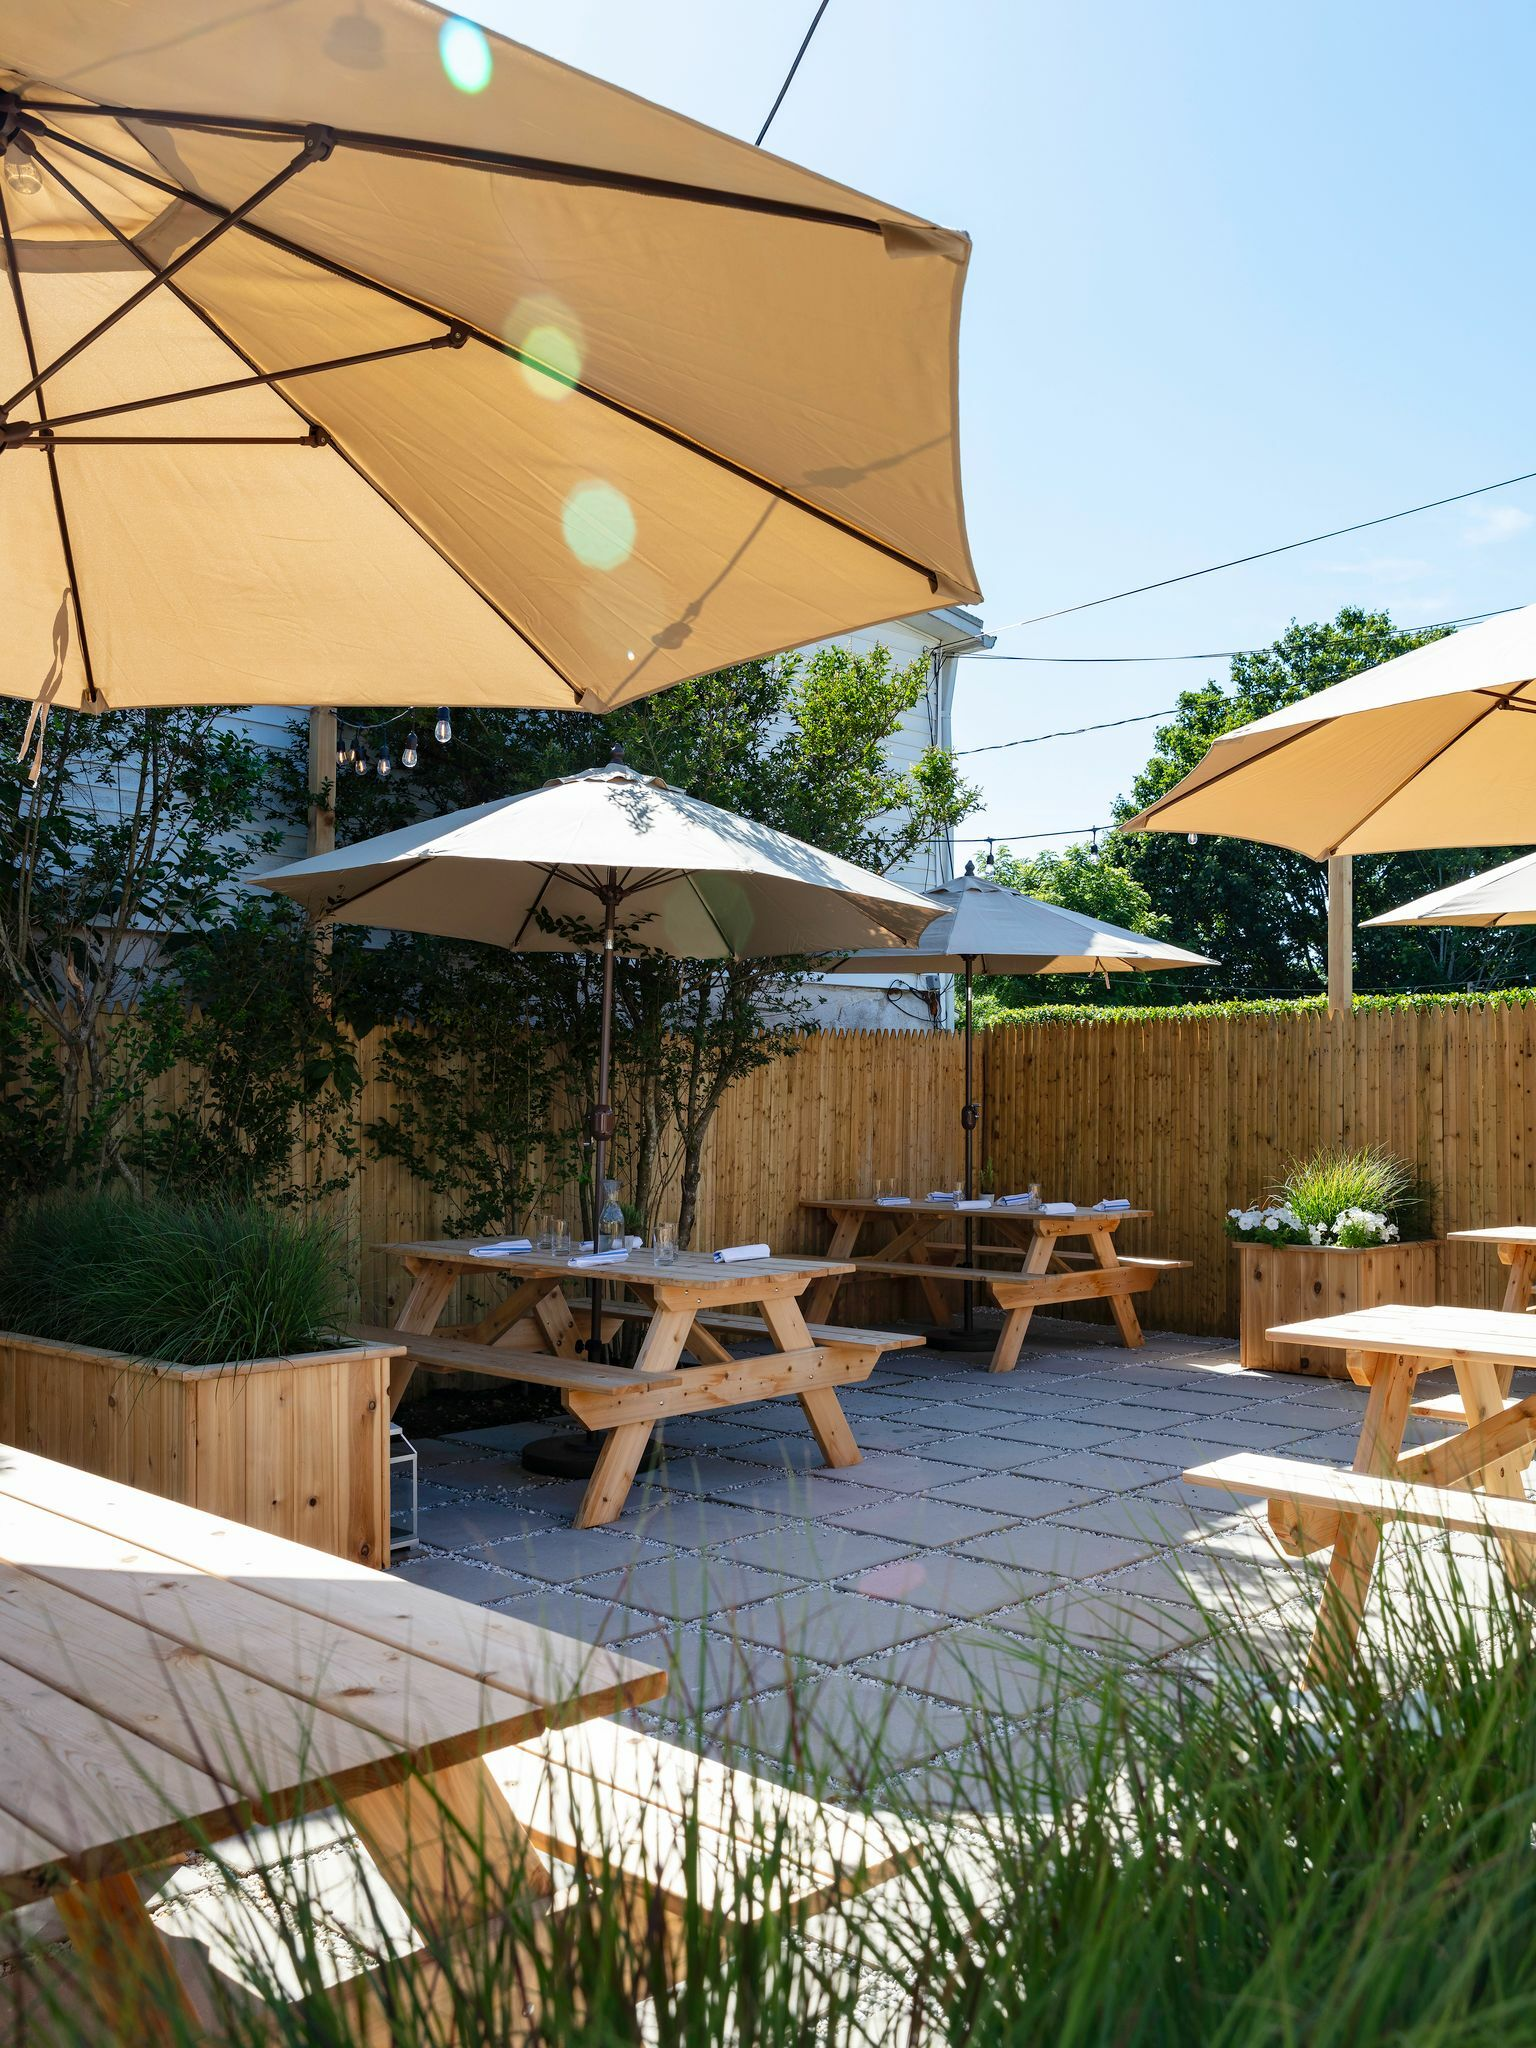 Outdoor dining at Main Street Tavern in Amagansett.